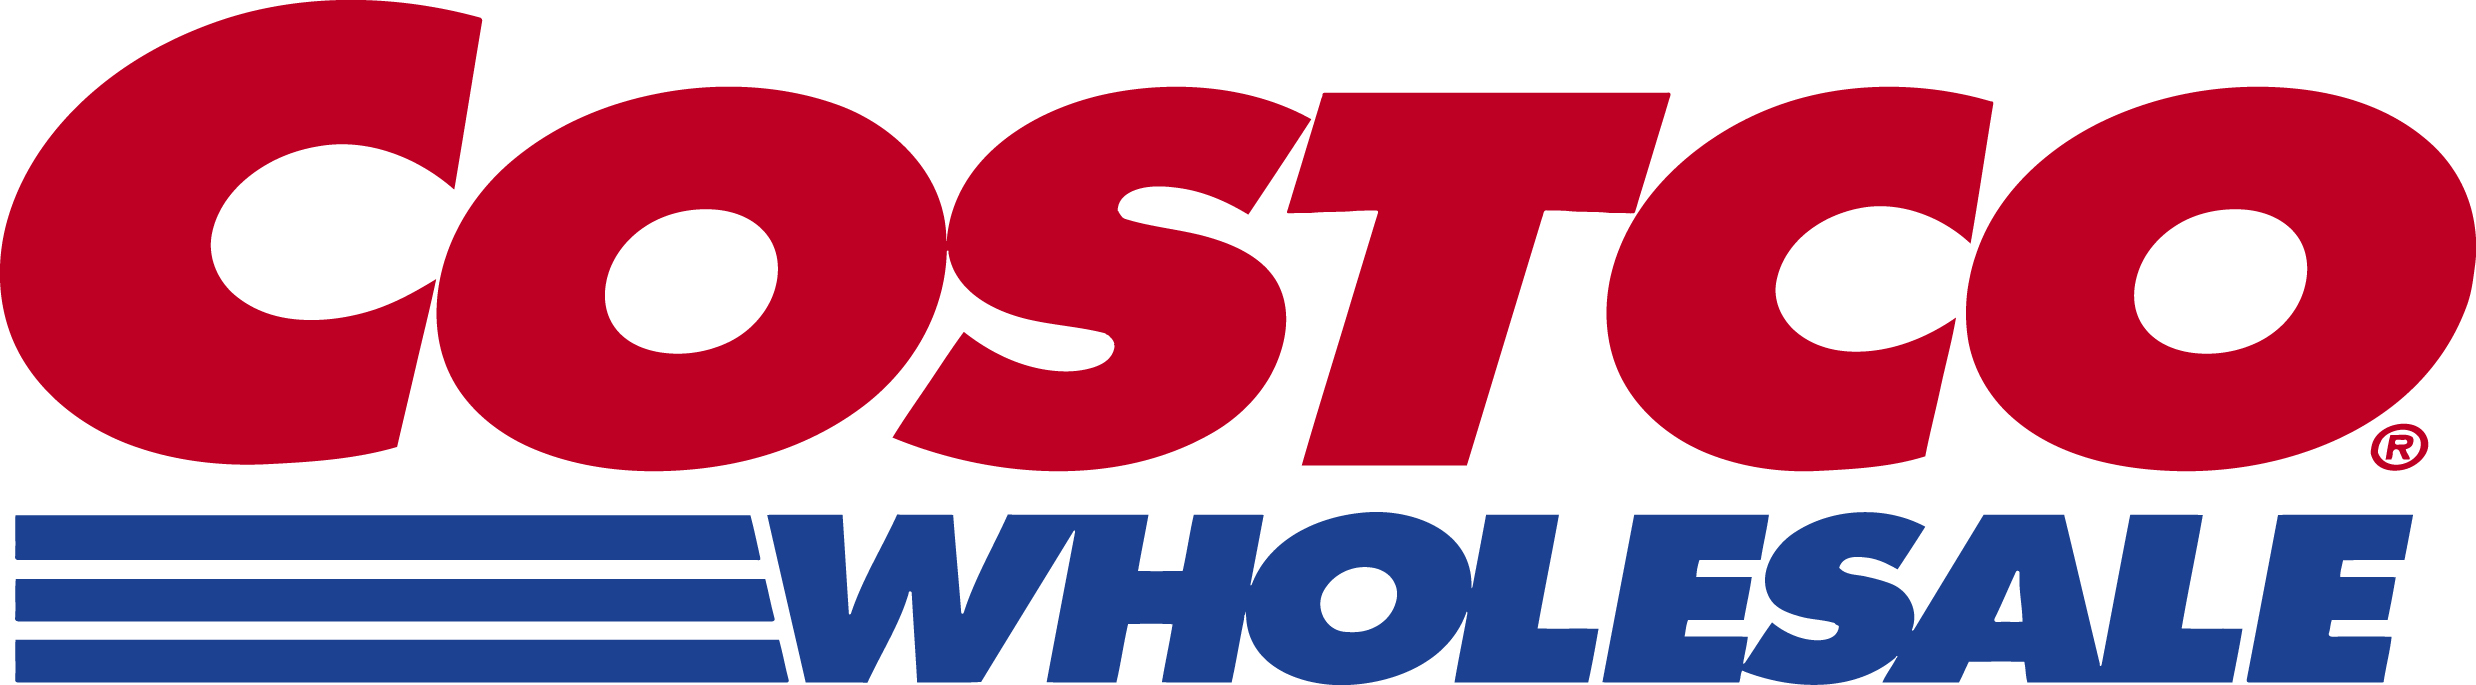 logo_costco.jpg